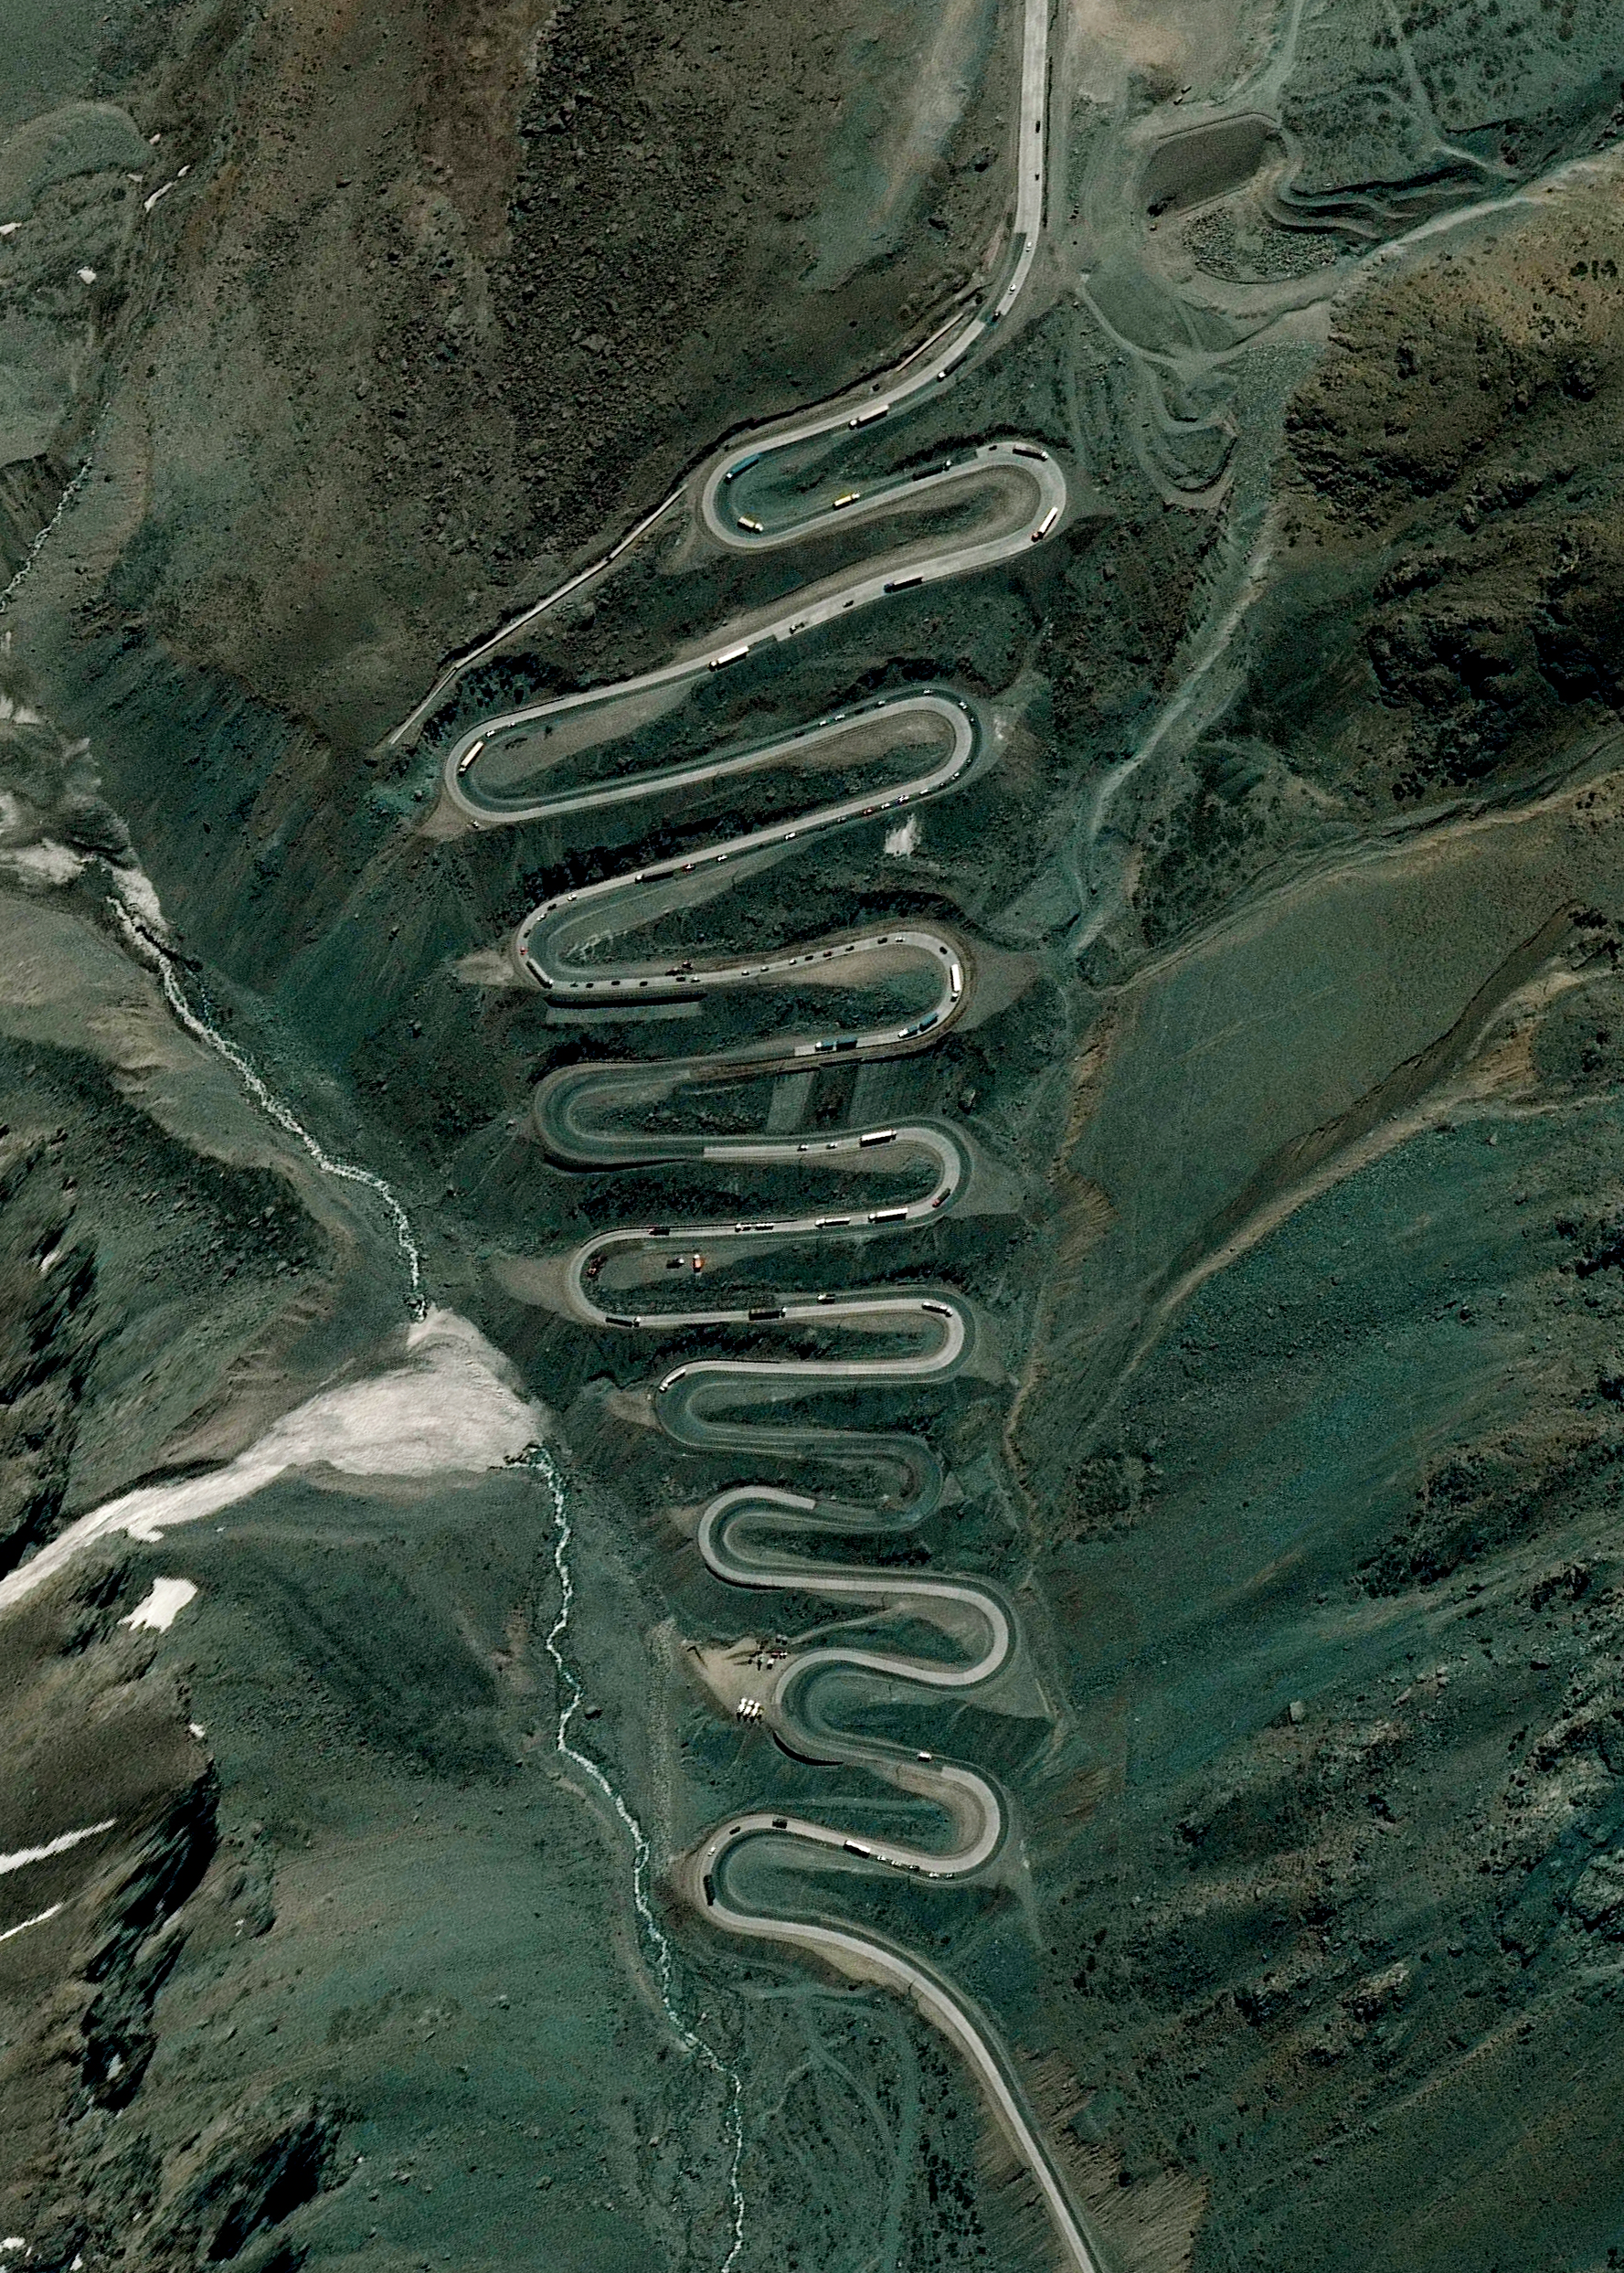 """10/17/2016   Los Caracoles Pass   Andes Mountains  32°51'6""""S 70°8'16""""W    Los Caracoles Pass, or The Snails Pass, is a twisting mountain road located in a remote section of the Andes Mountains on the Chilean side of the border with Argentina. The path climbs to an elevation of 10,419 feet, has no roadside safety barriers, and is frequented by large trucks."""